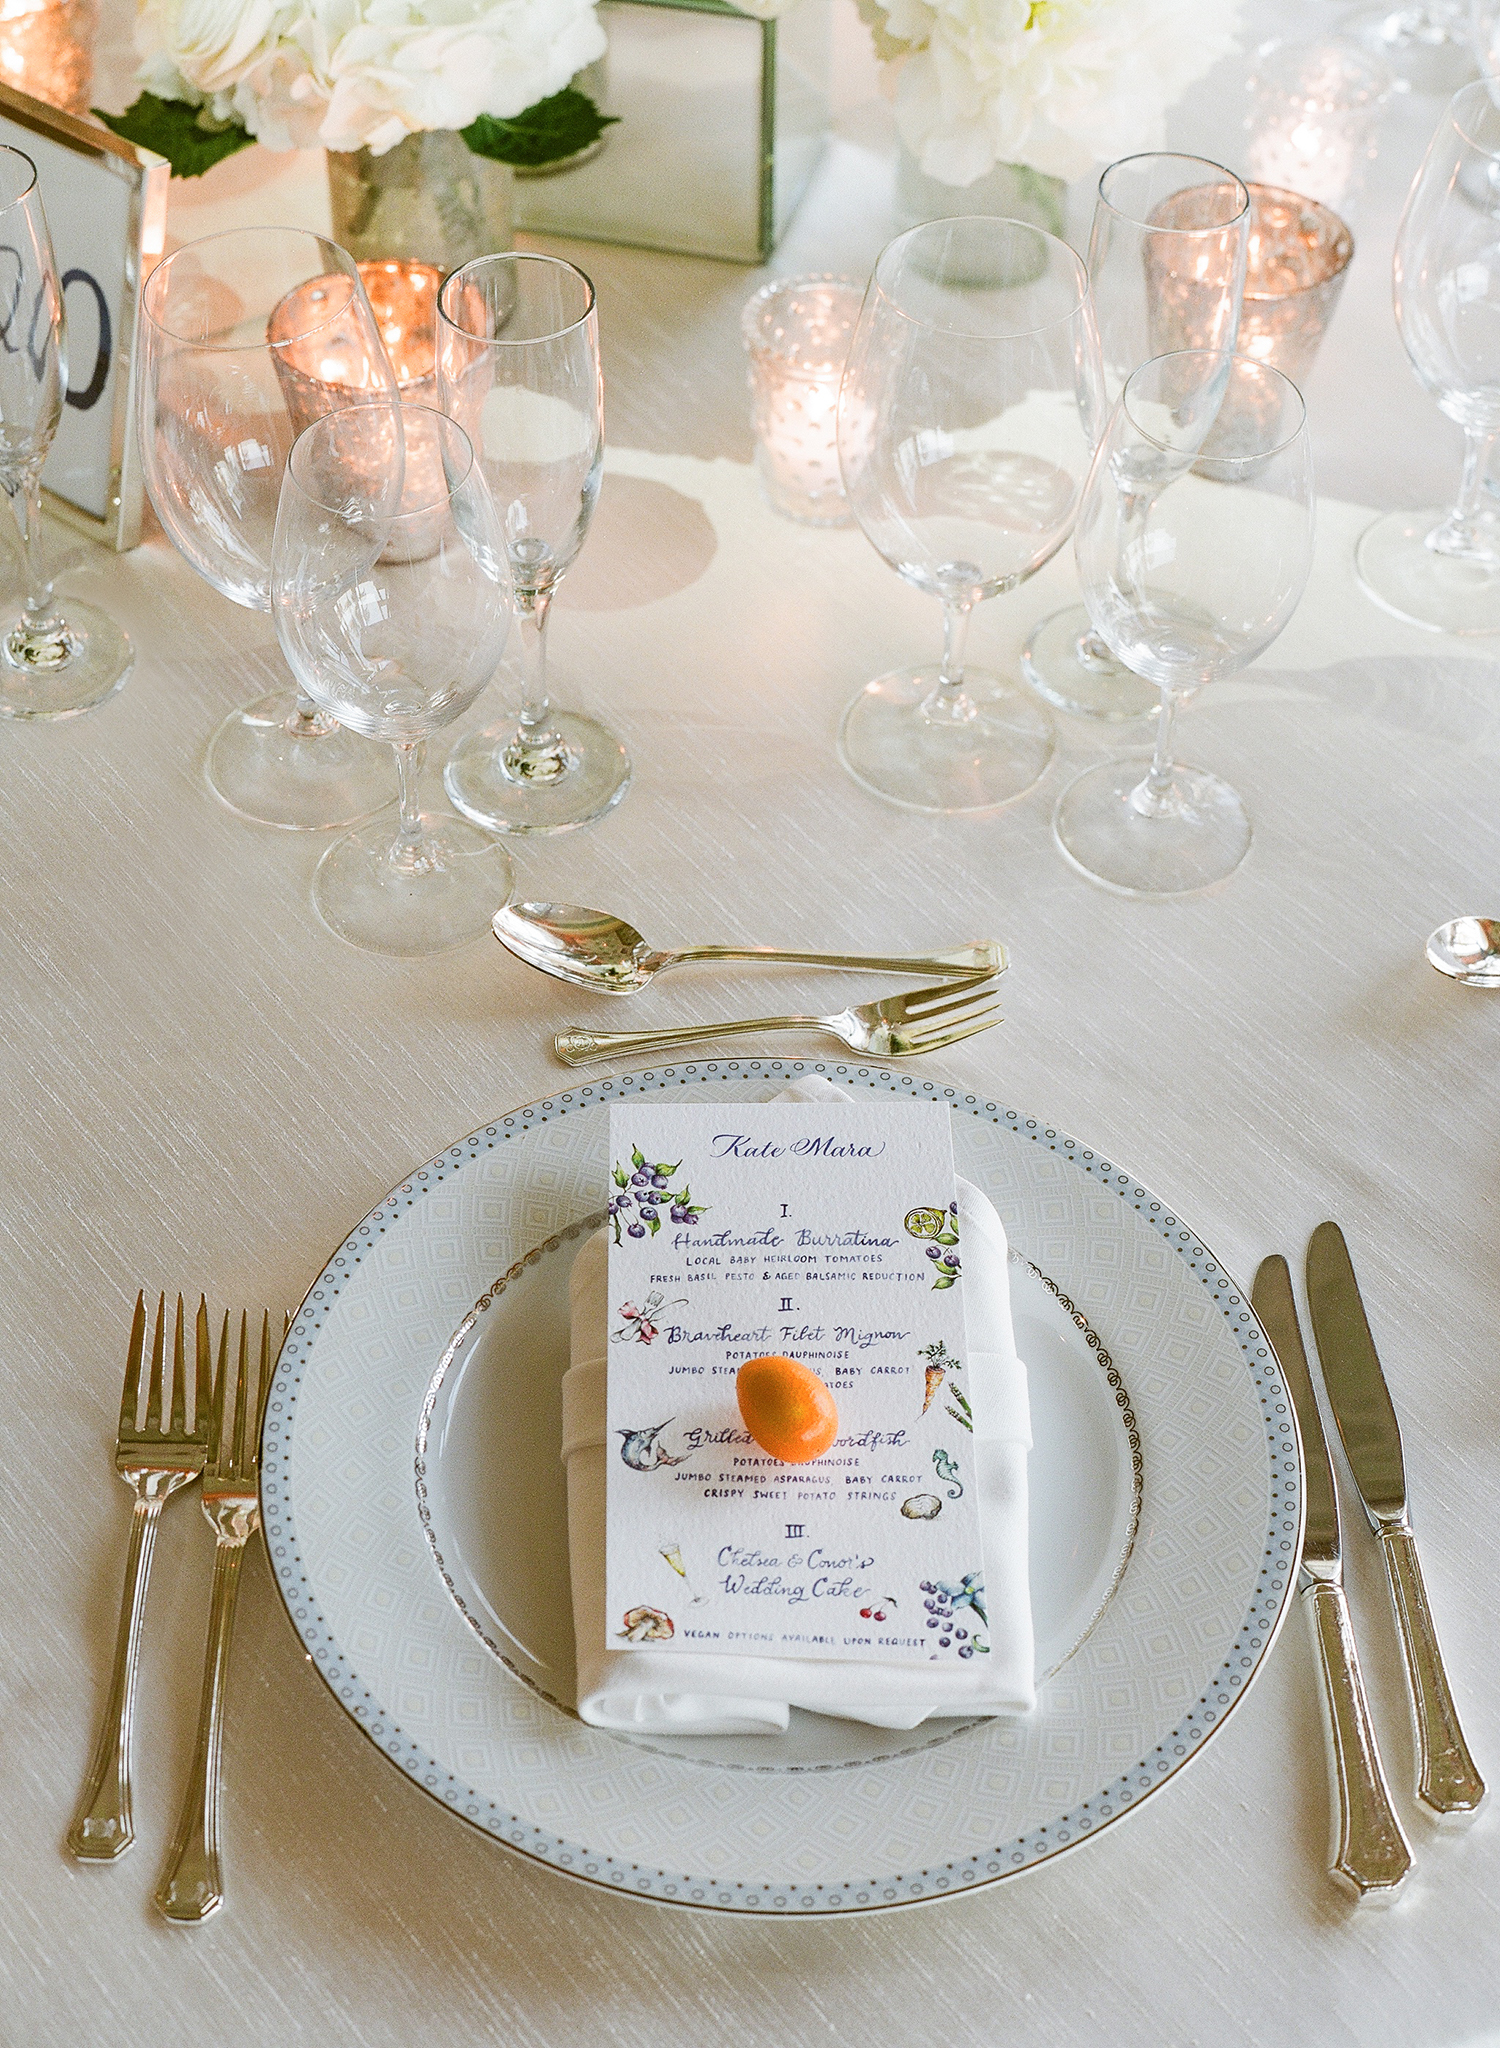 Menus and Matchmakers